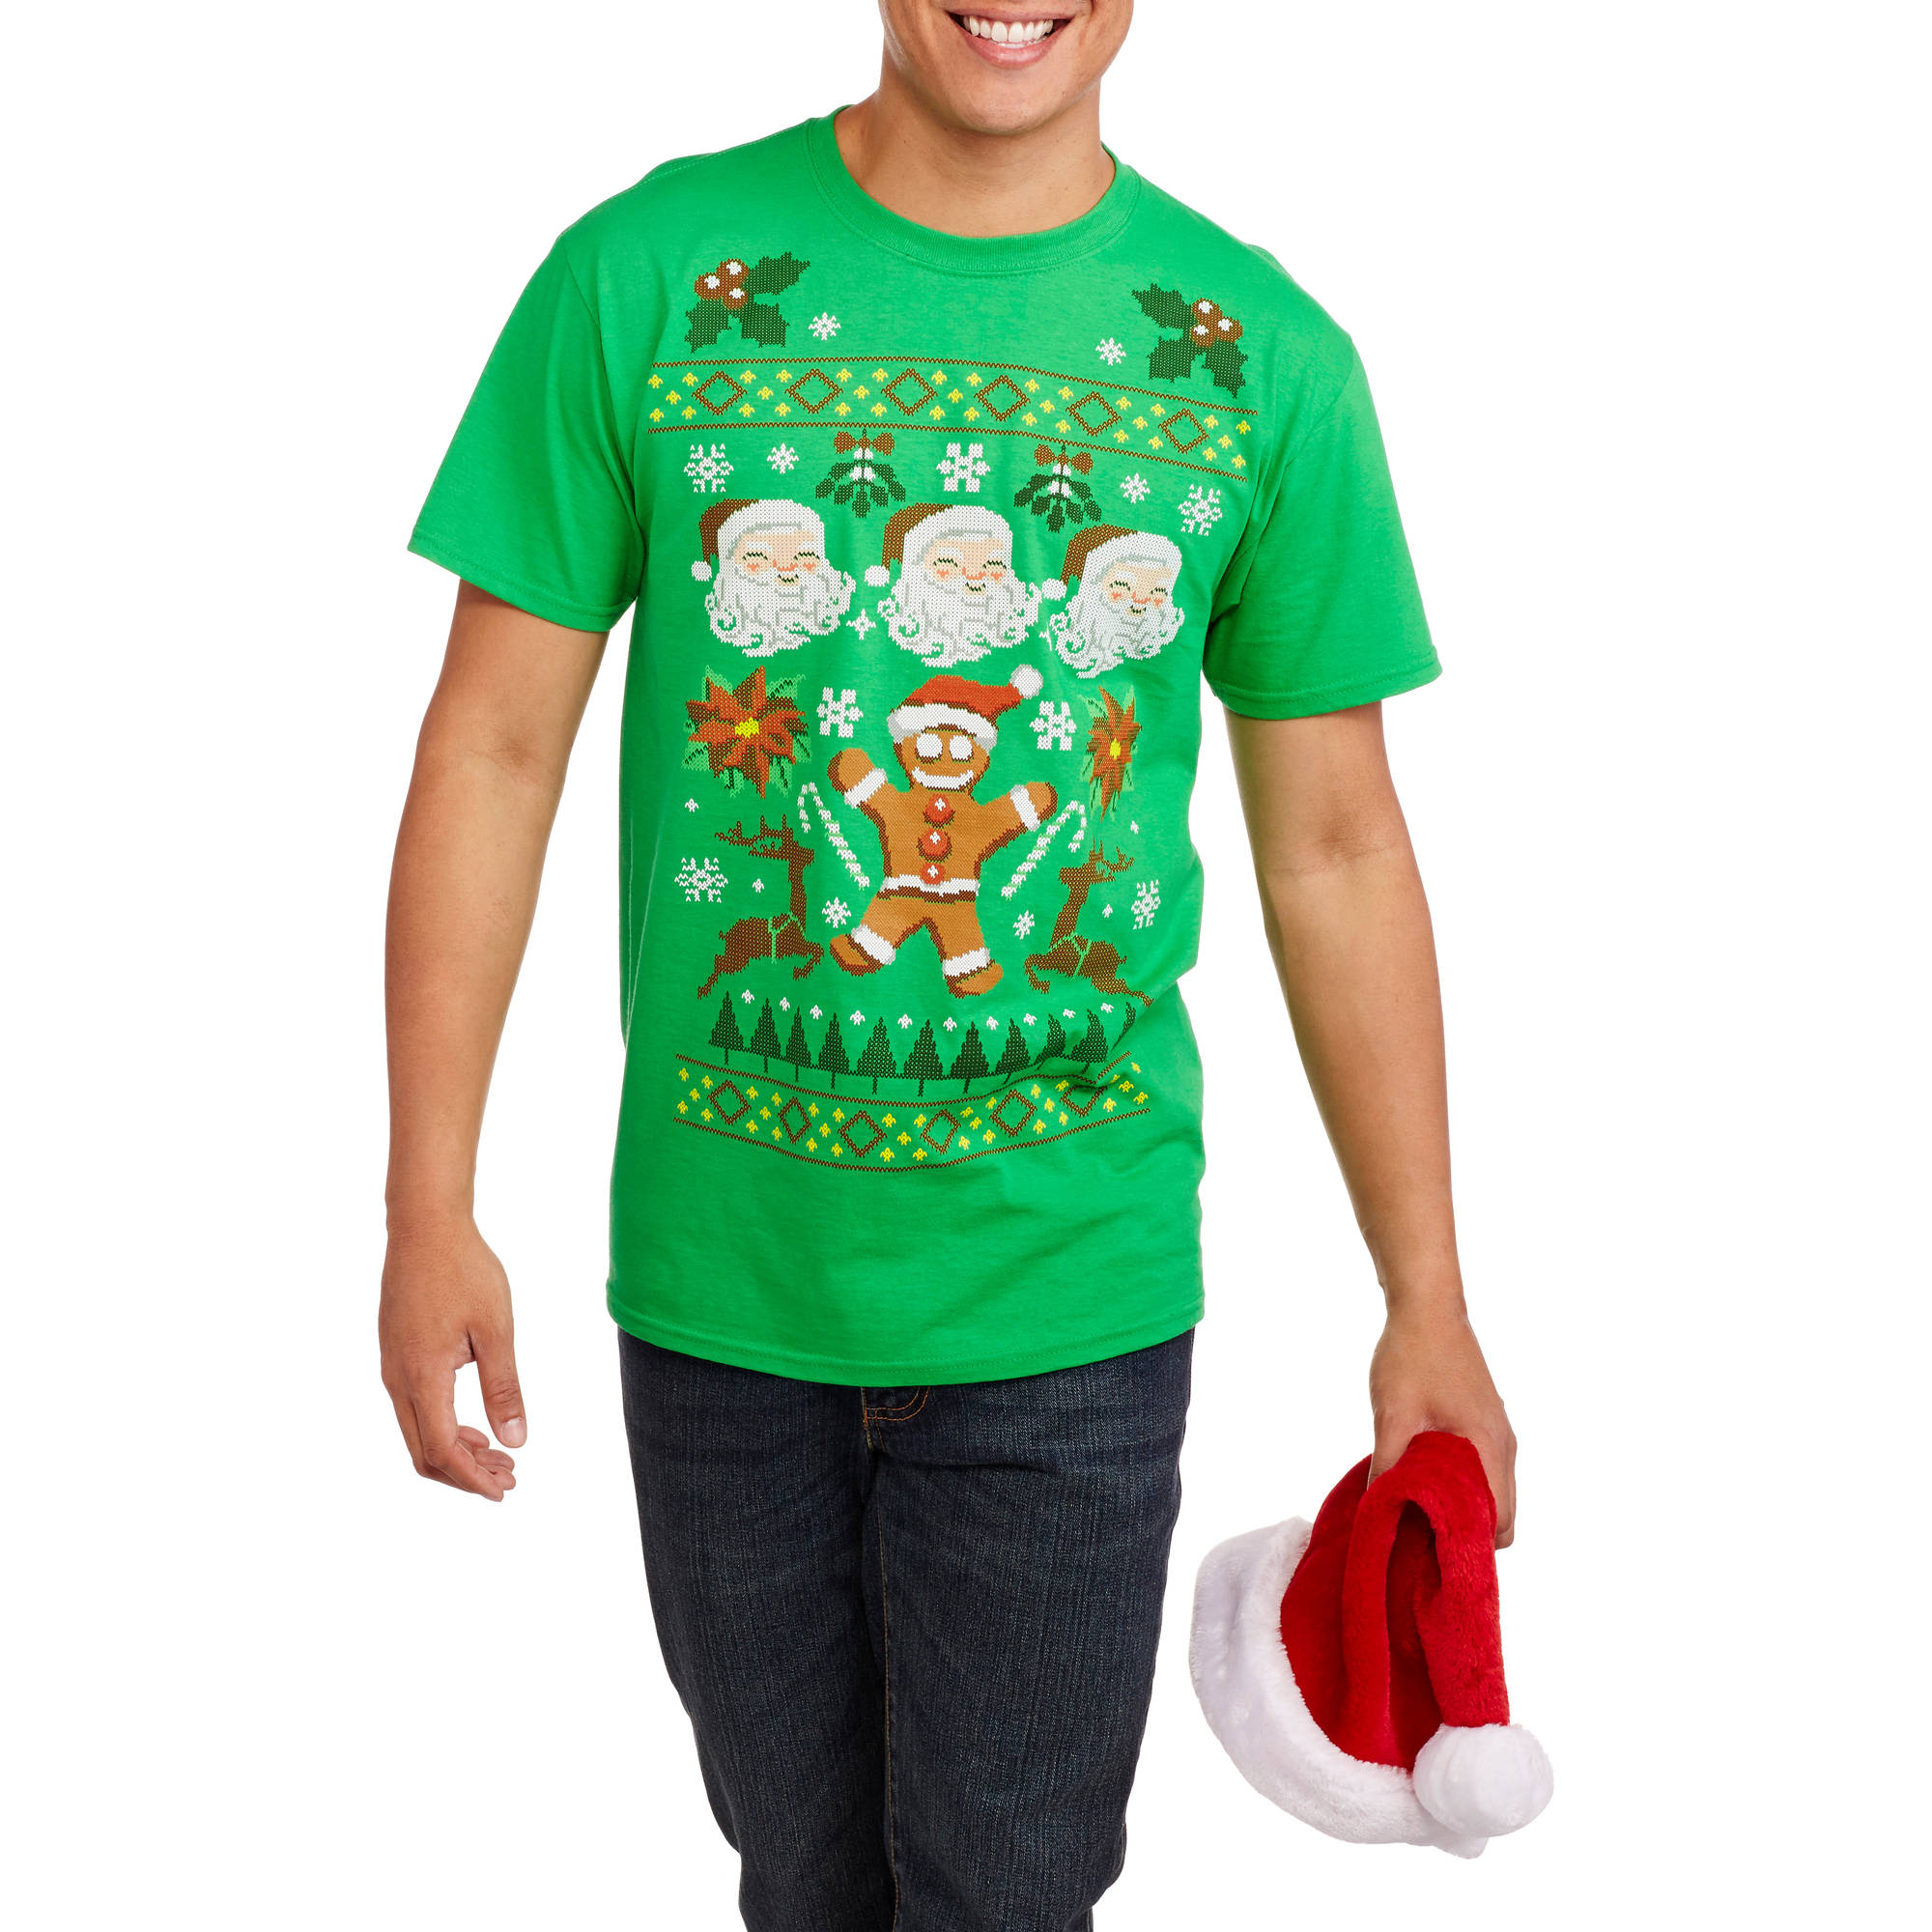 Christmas Men's Ugly Sweater Deluxe Graphic Tee